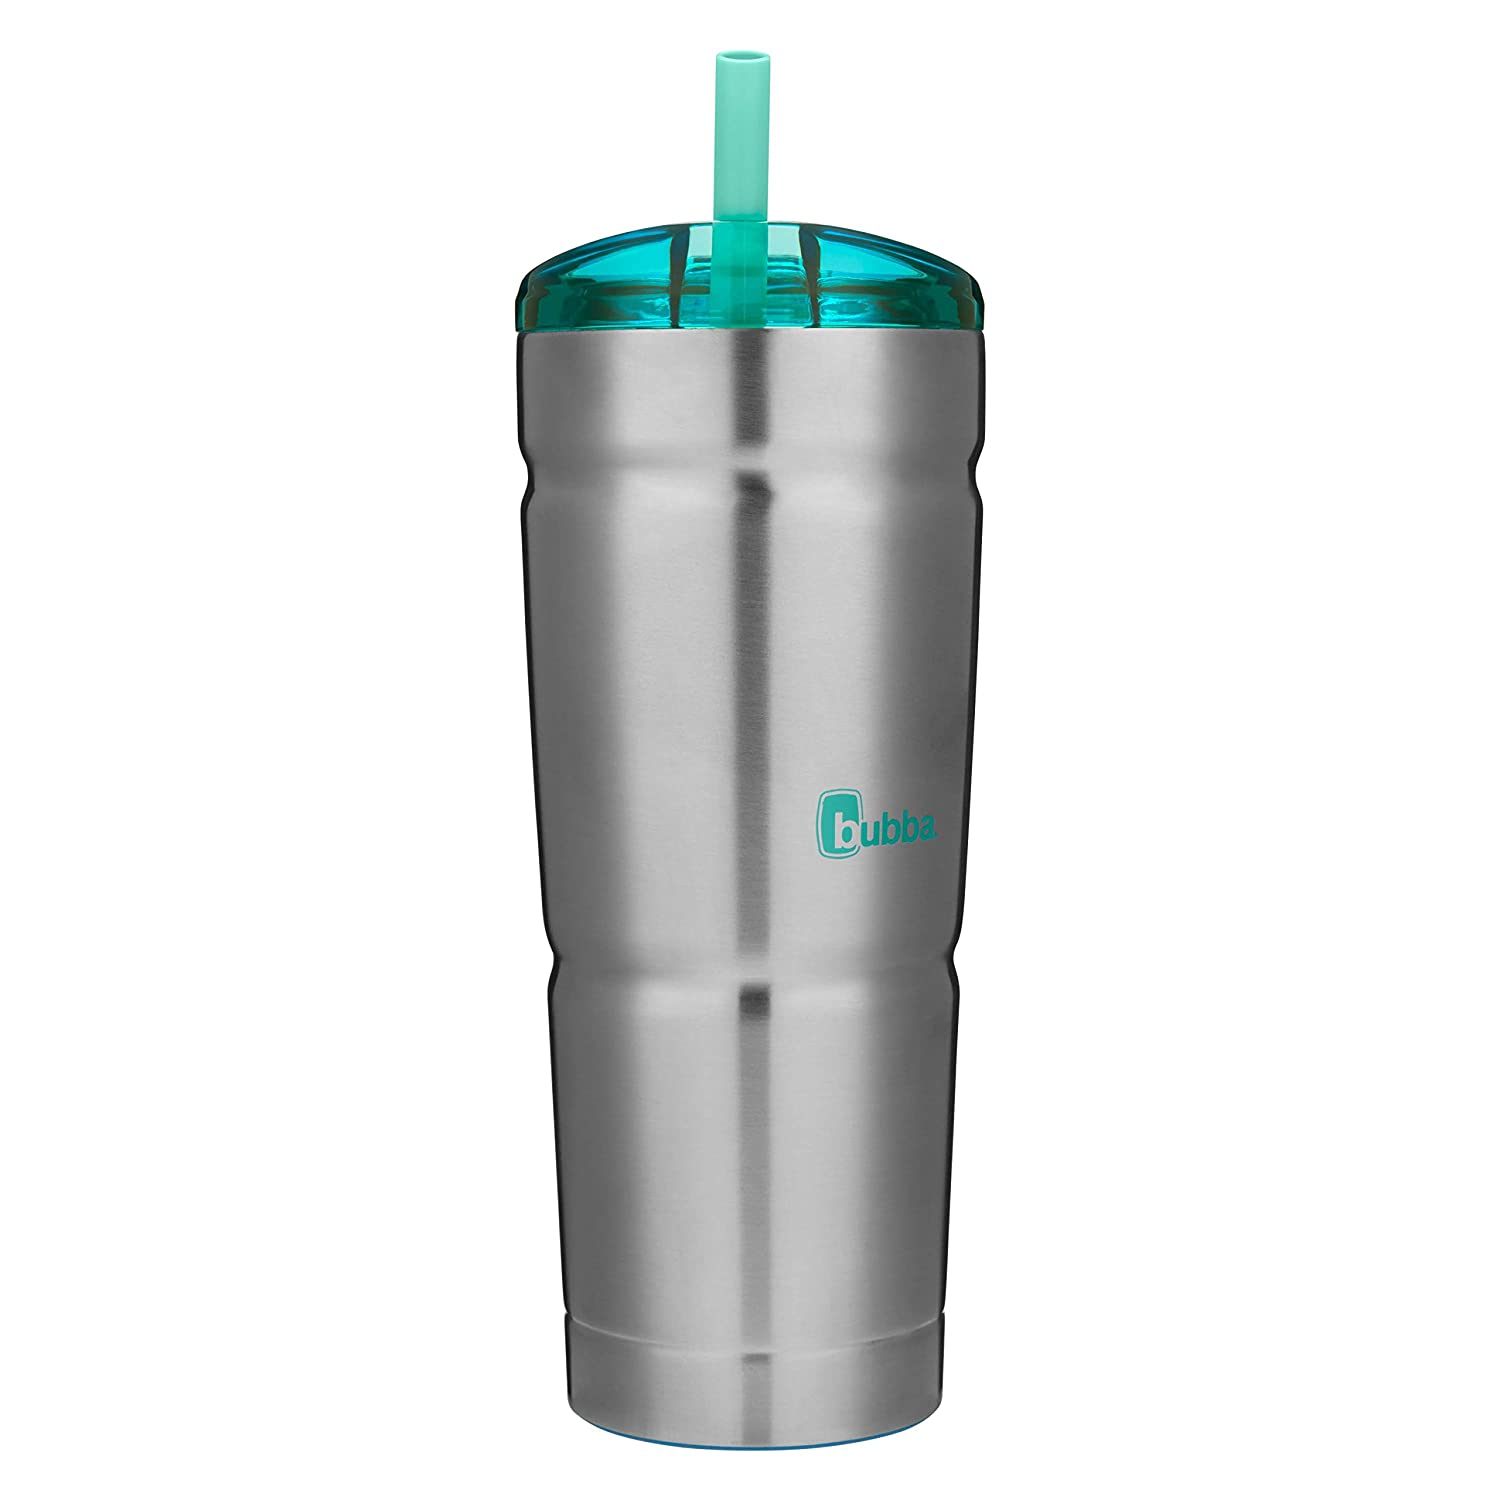 Bubba Straw Envy S Vacuum-Insulated Stainless Steel Tumbler, 24 oz, Island Teal Lid